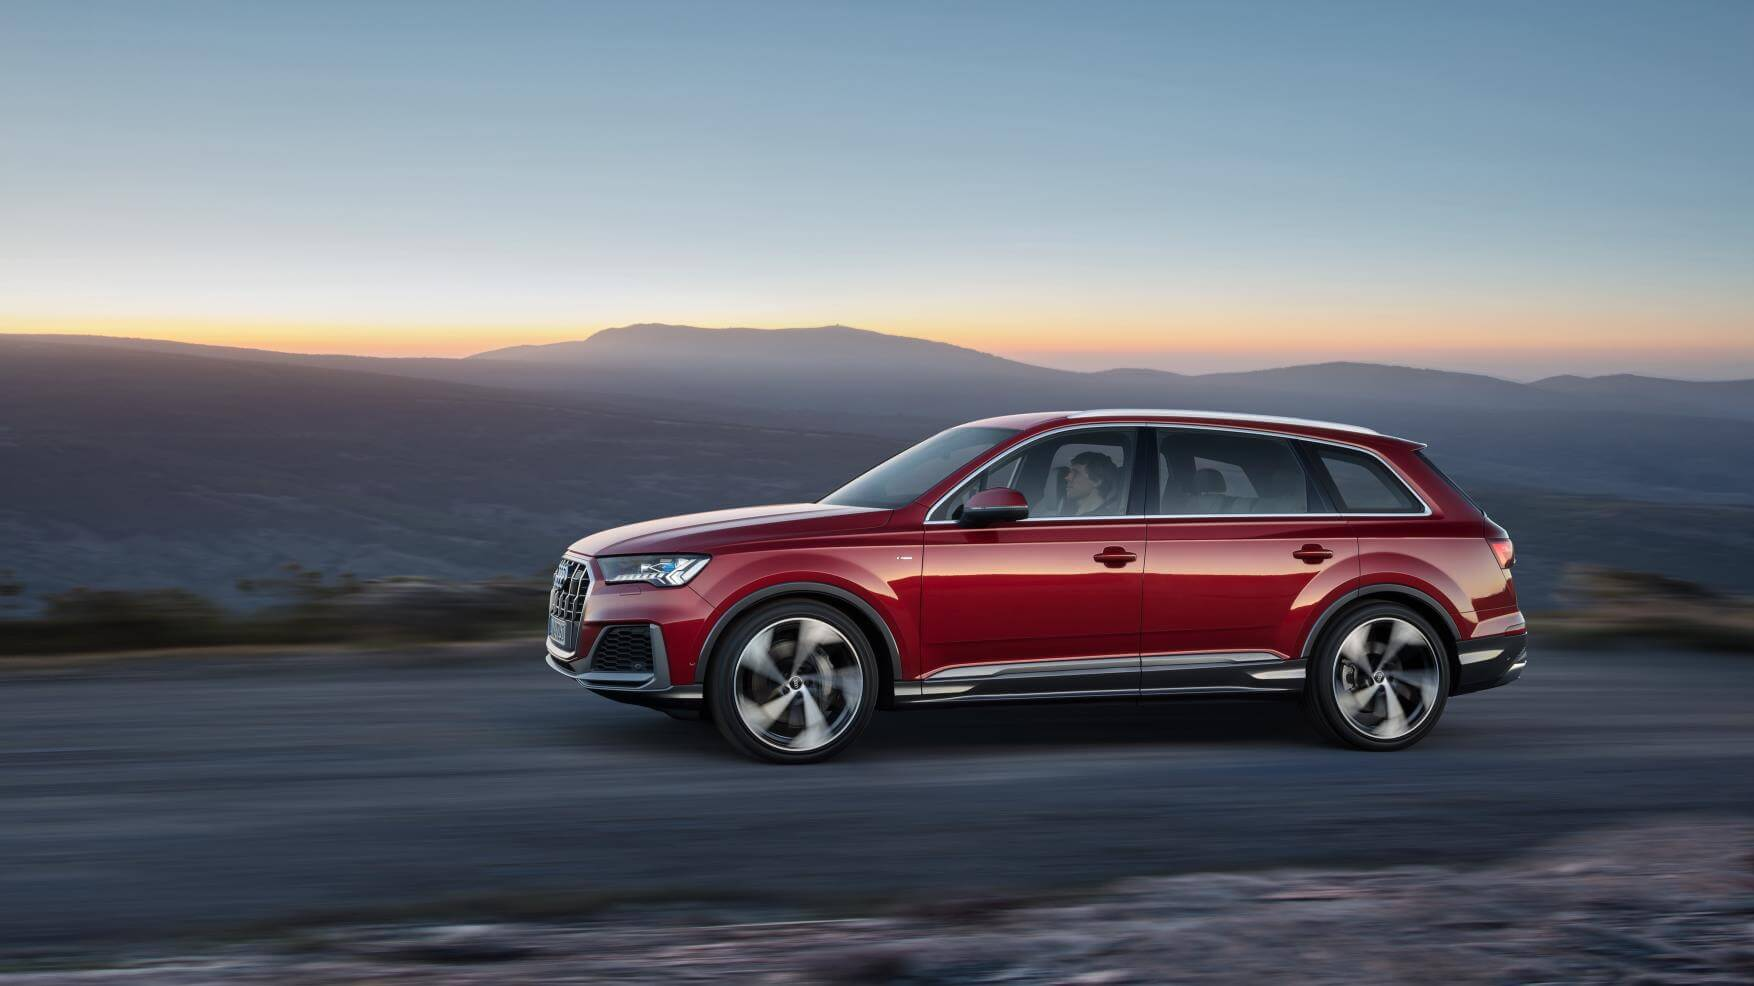 Audi Q7 2019: lateral